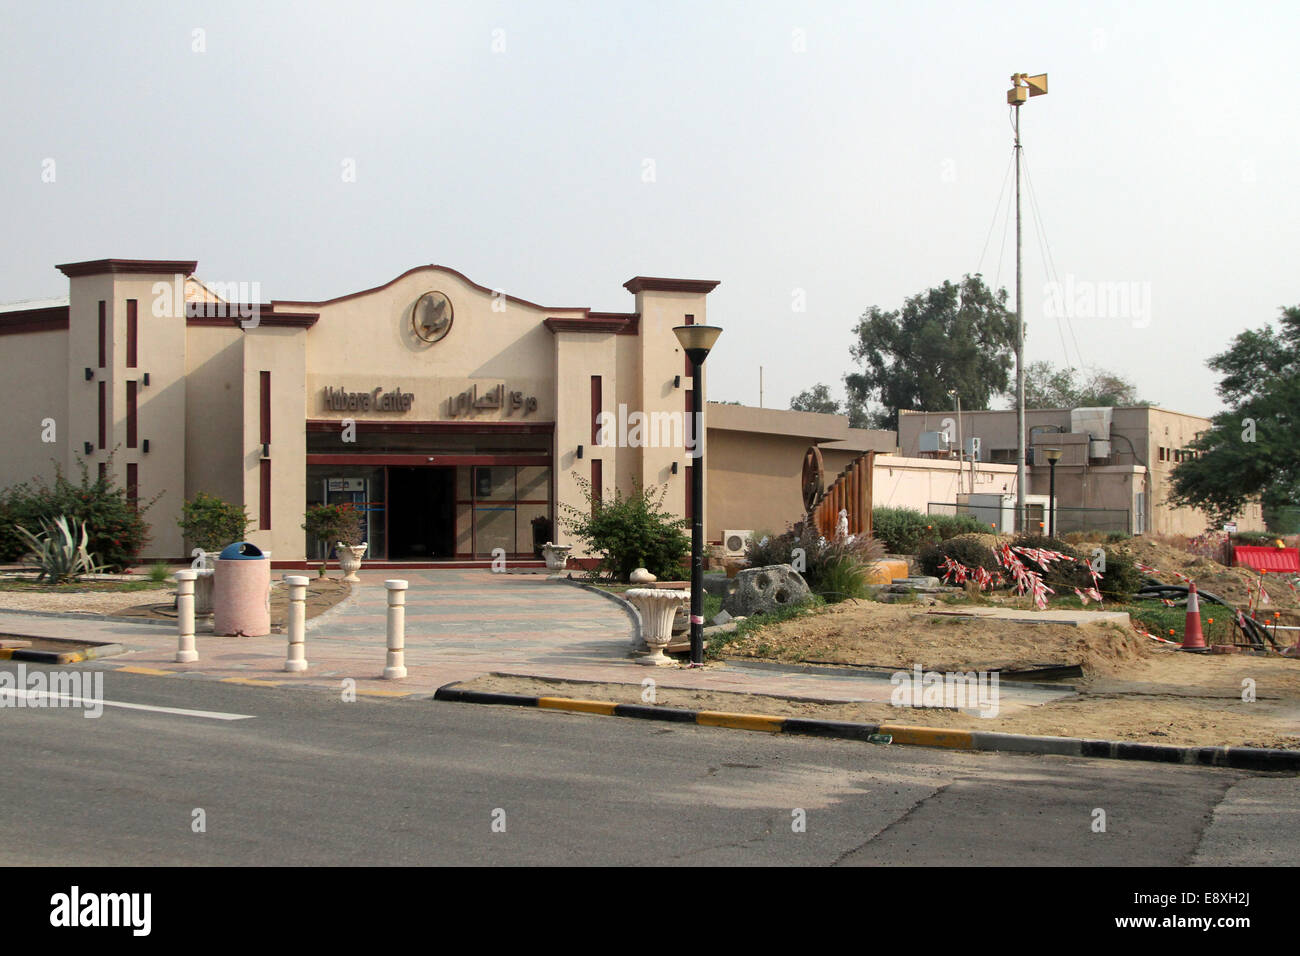 The Hubara leisure centre in Ahmadi, Kuwait on Wednesday 21 November 2012 - Stock Image